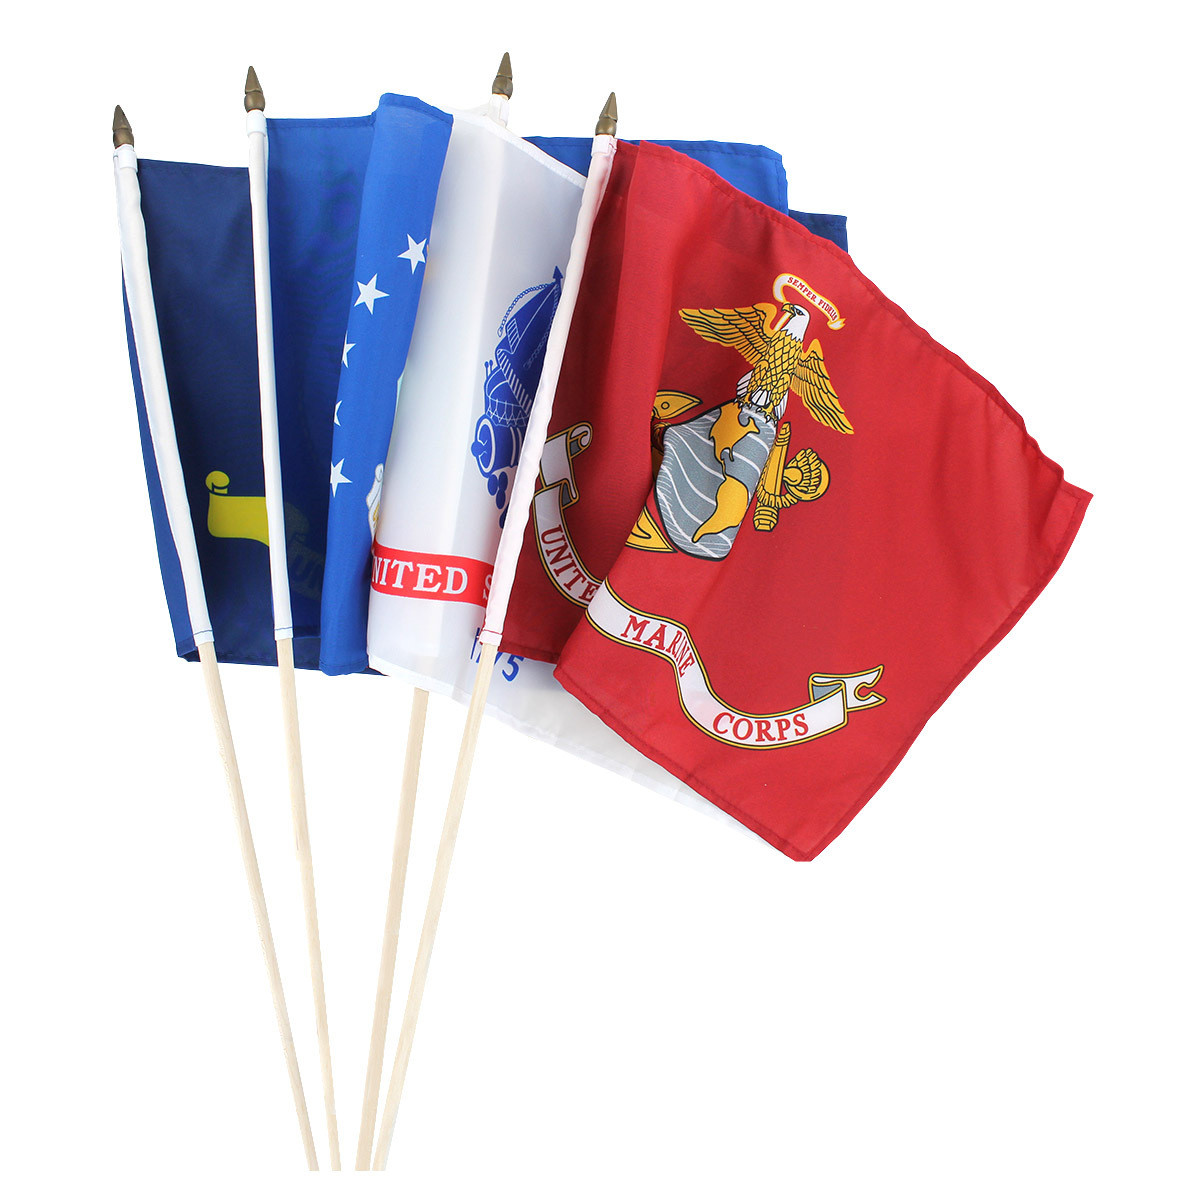 Military Stick flags 4 x 6 inch